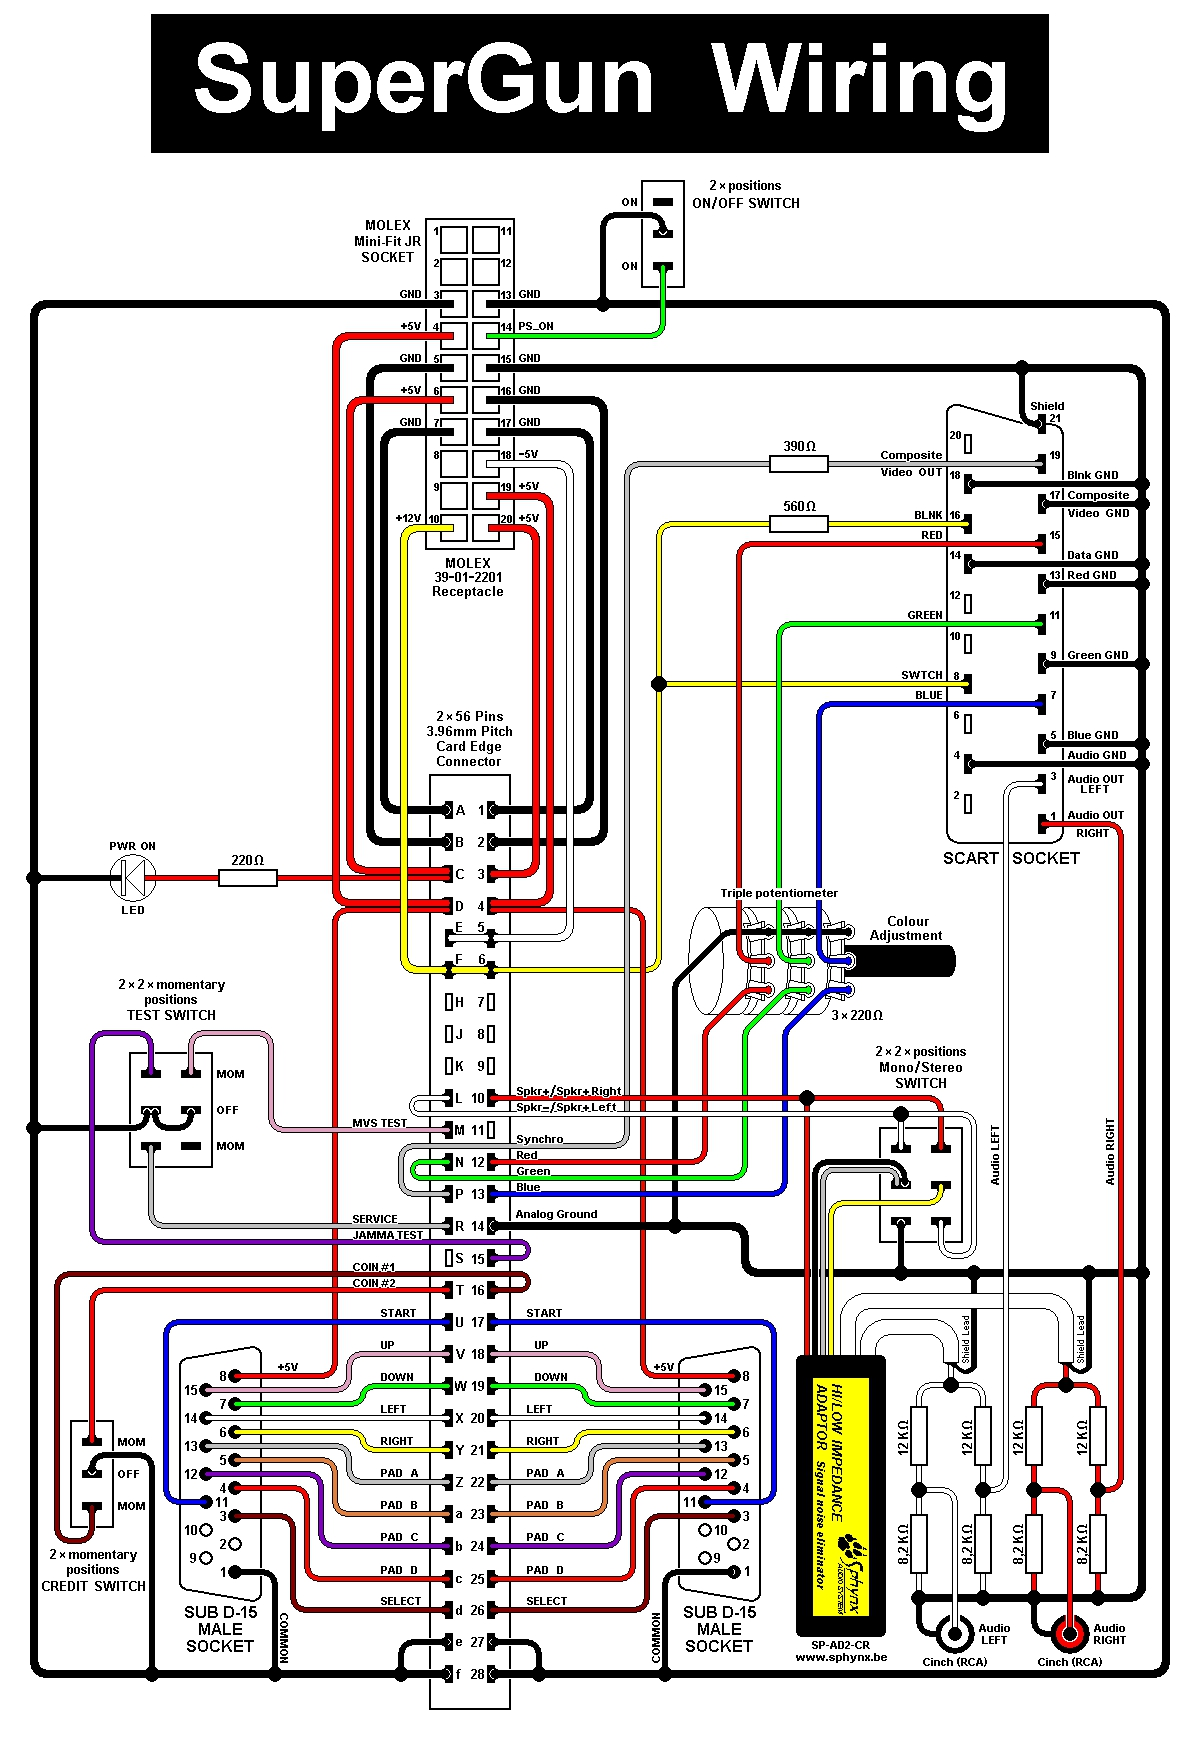 SuperGun jamma supergun 8bitplus arcade power supply wiring diagram at n-0.co